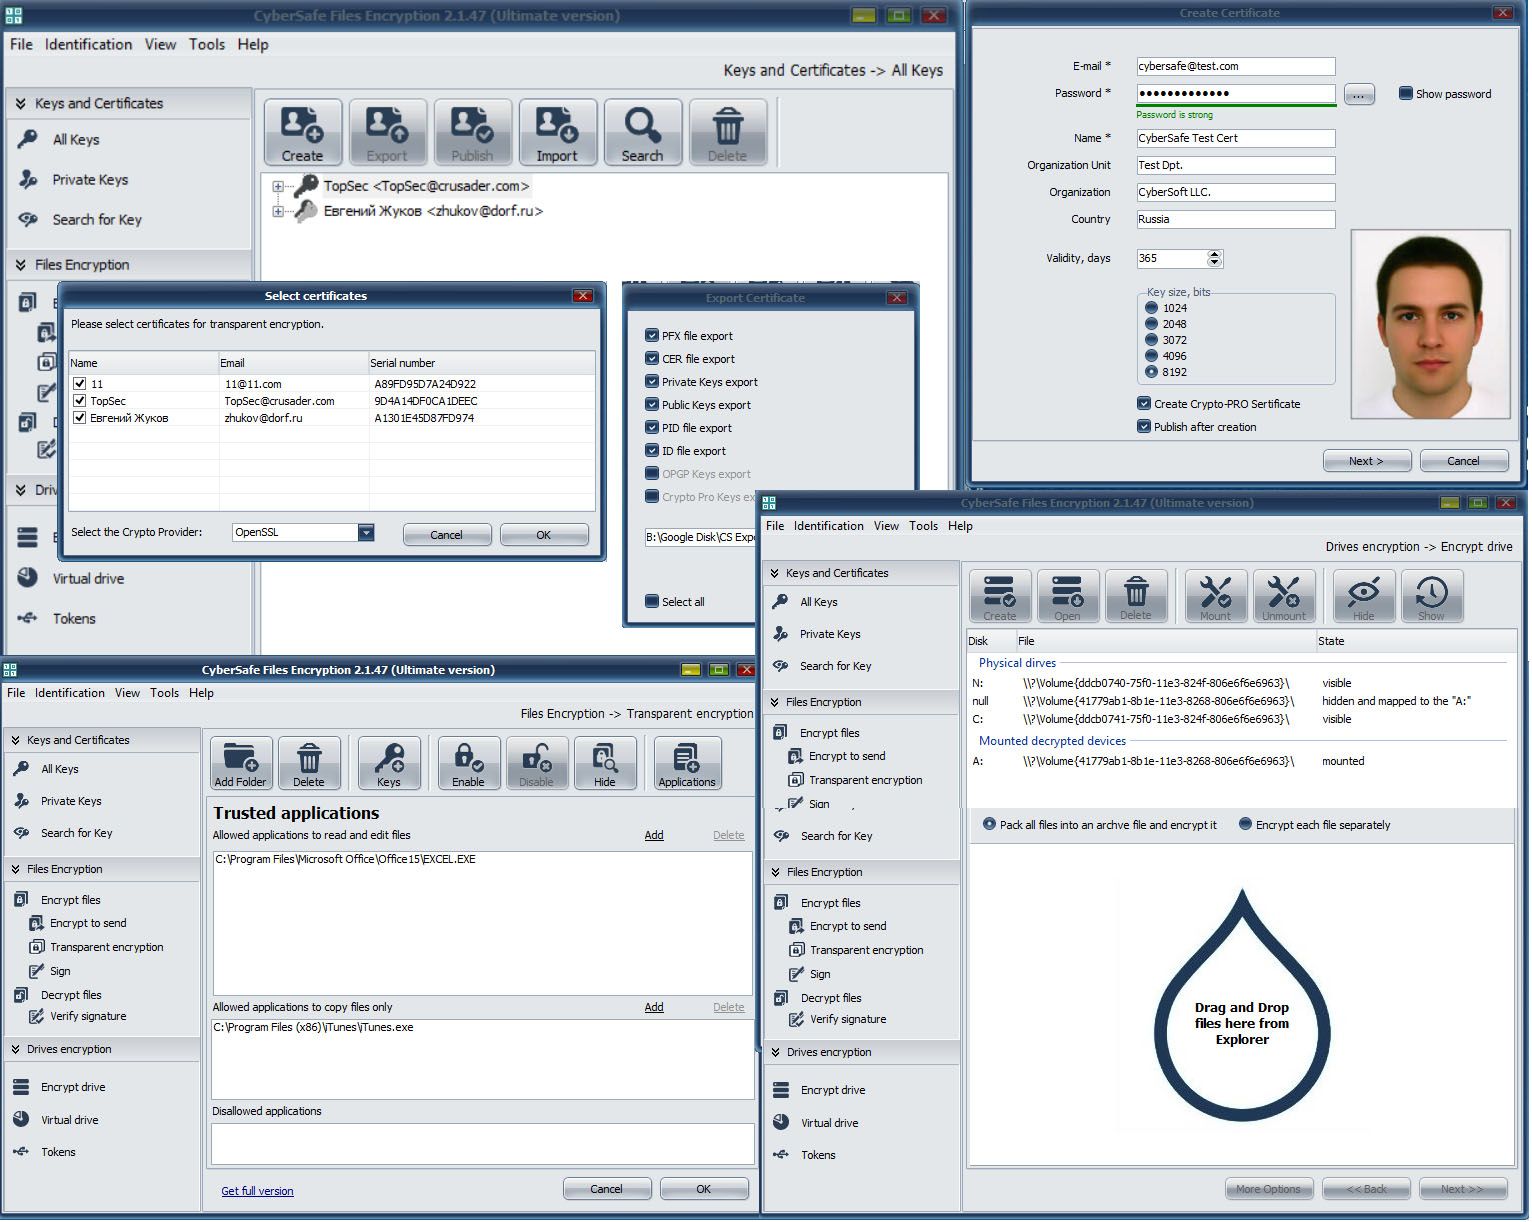 Screenshot of CyberSafe Files Encryption 2.1.5.1